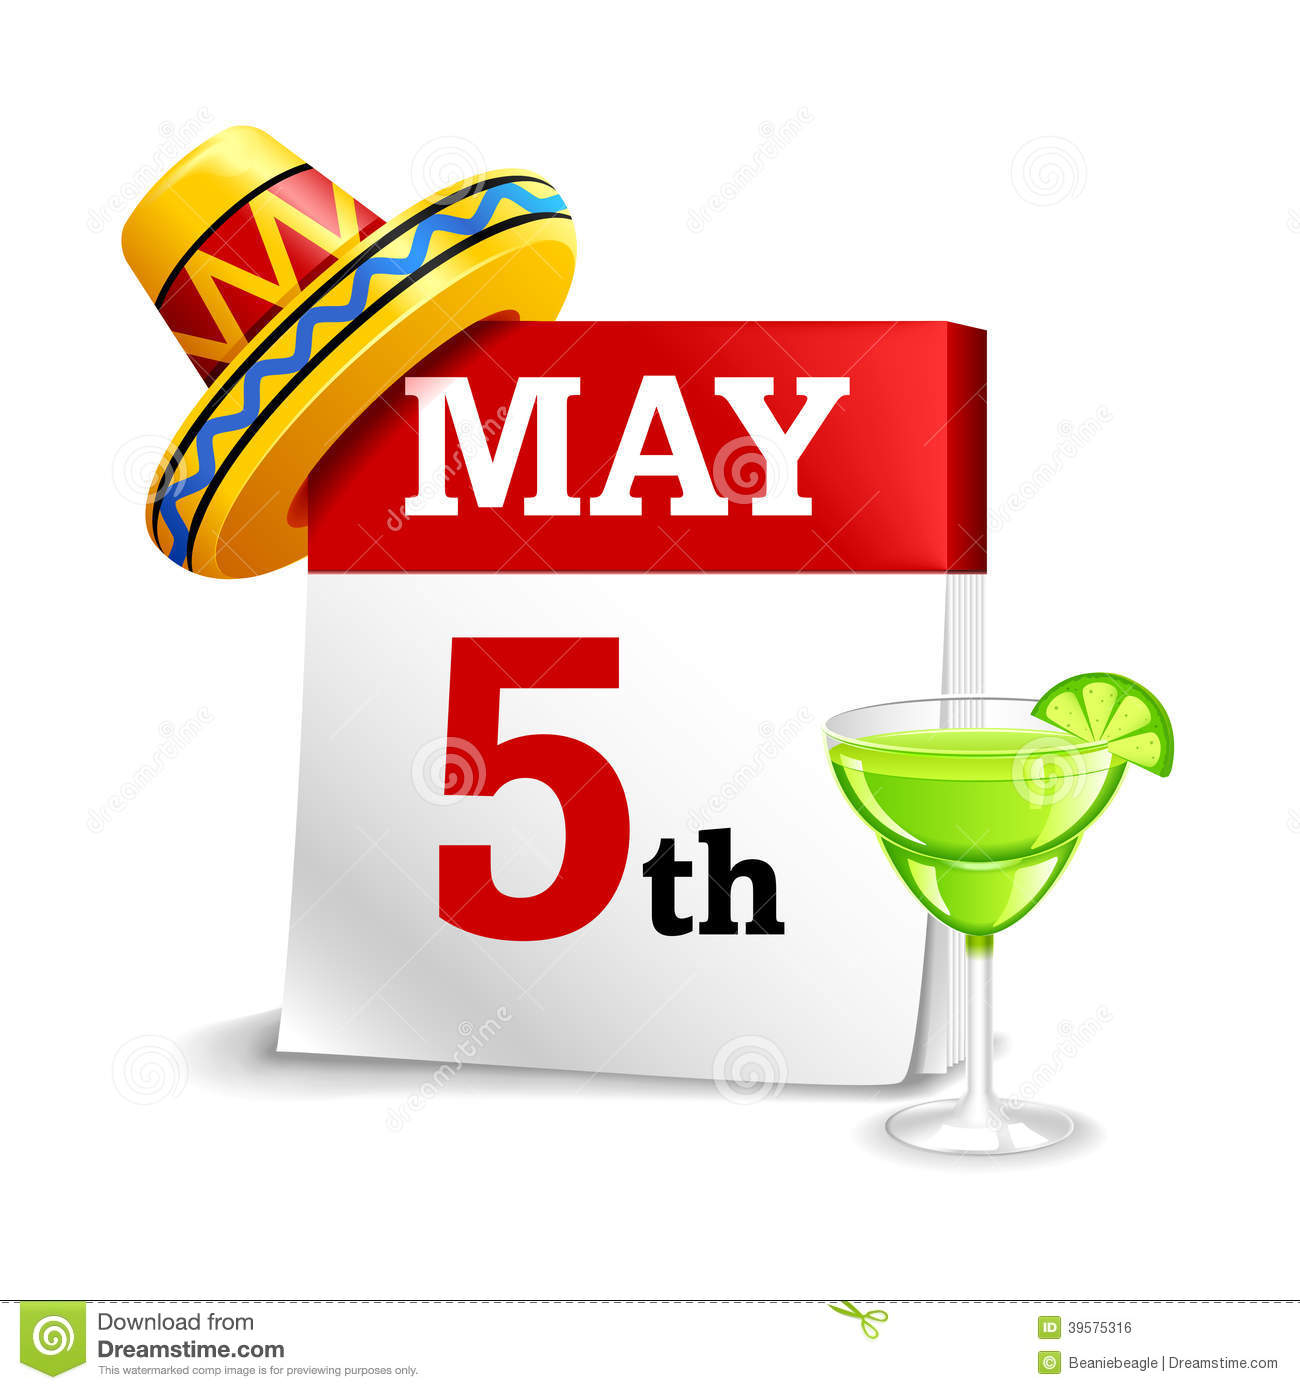 an examination of the fifth of may or cinco de mayo a mexican holiday Cinco de mayo is one of the most celebrated holidays in the united states every may 5, hundreds of fraternities will hold end of year get drunk parties in the name of cinco de mayo.